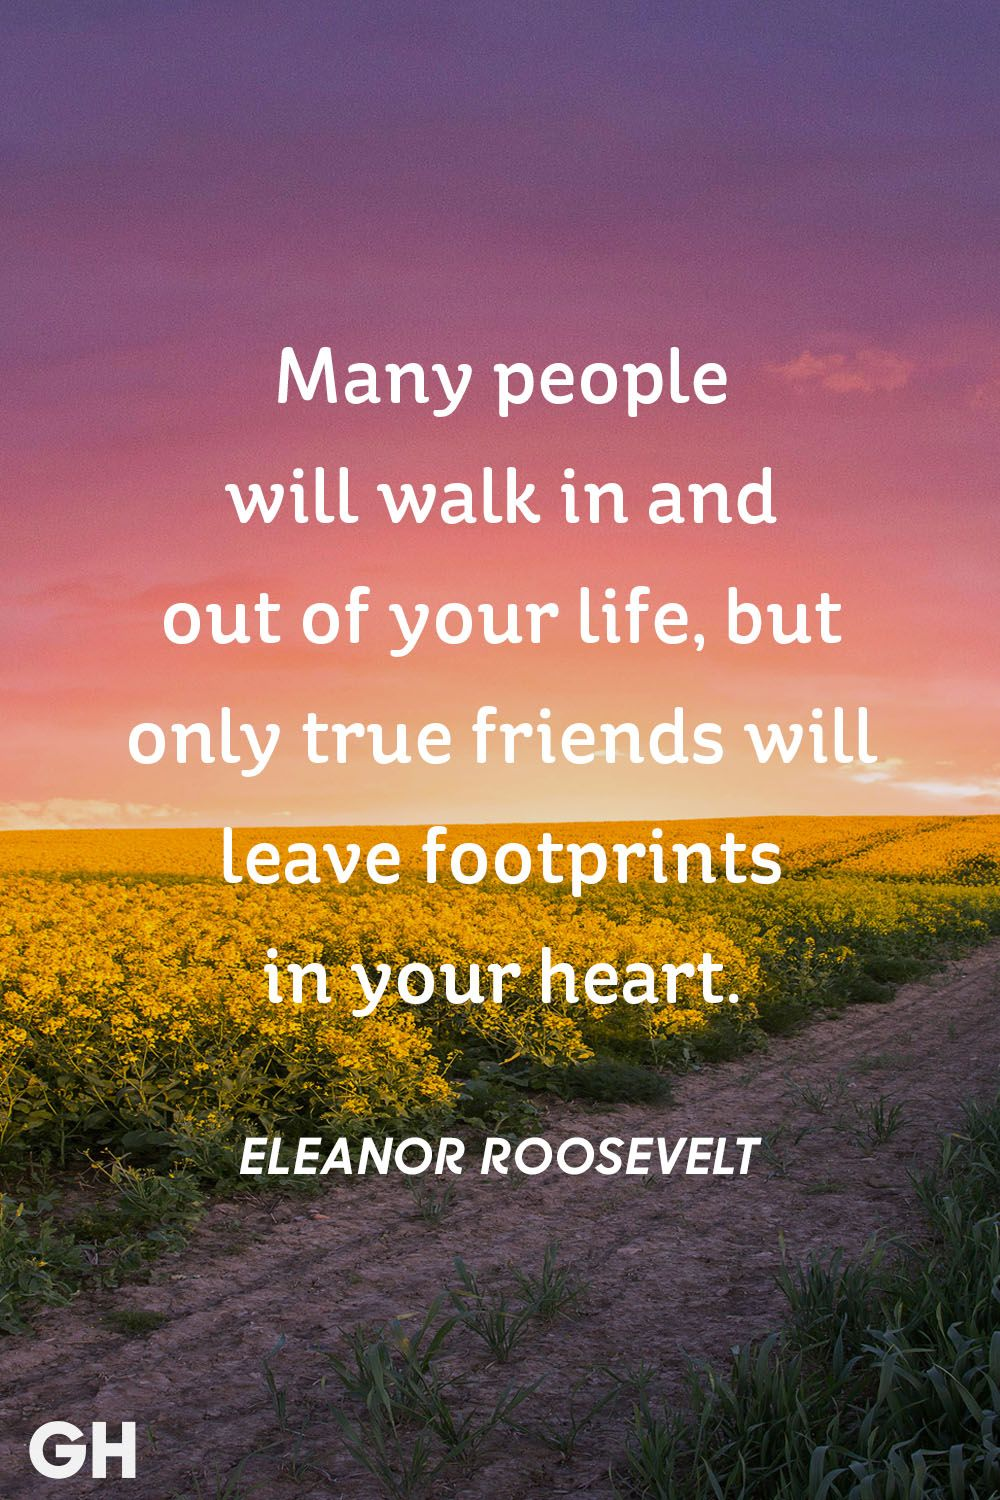 Marvelous 20 Short Friendship Quotes To Share With Your Best Friend   Cute Sayings  About Friends